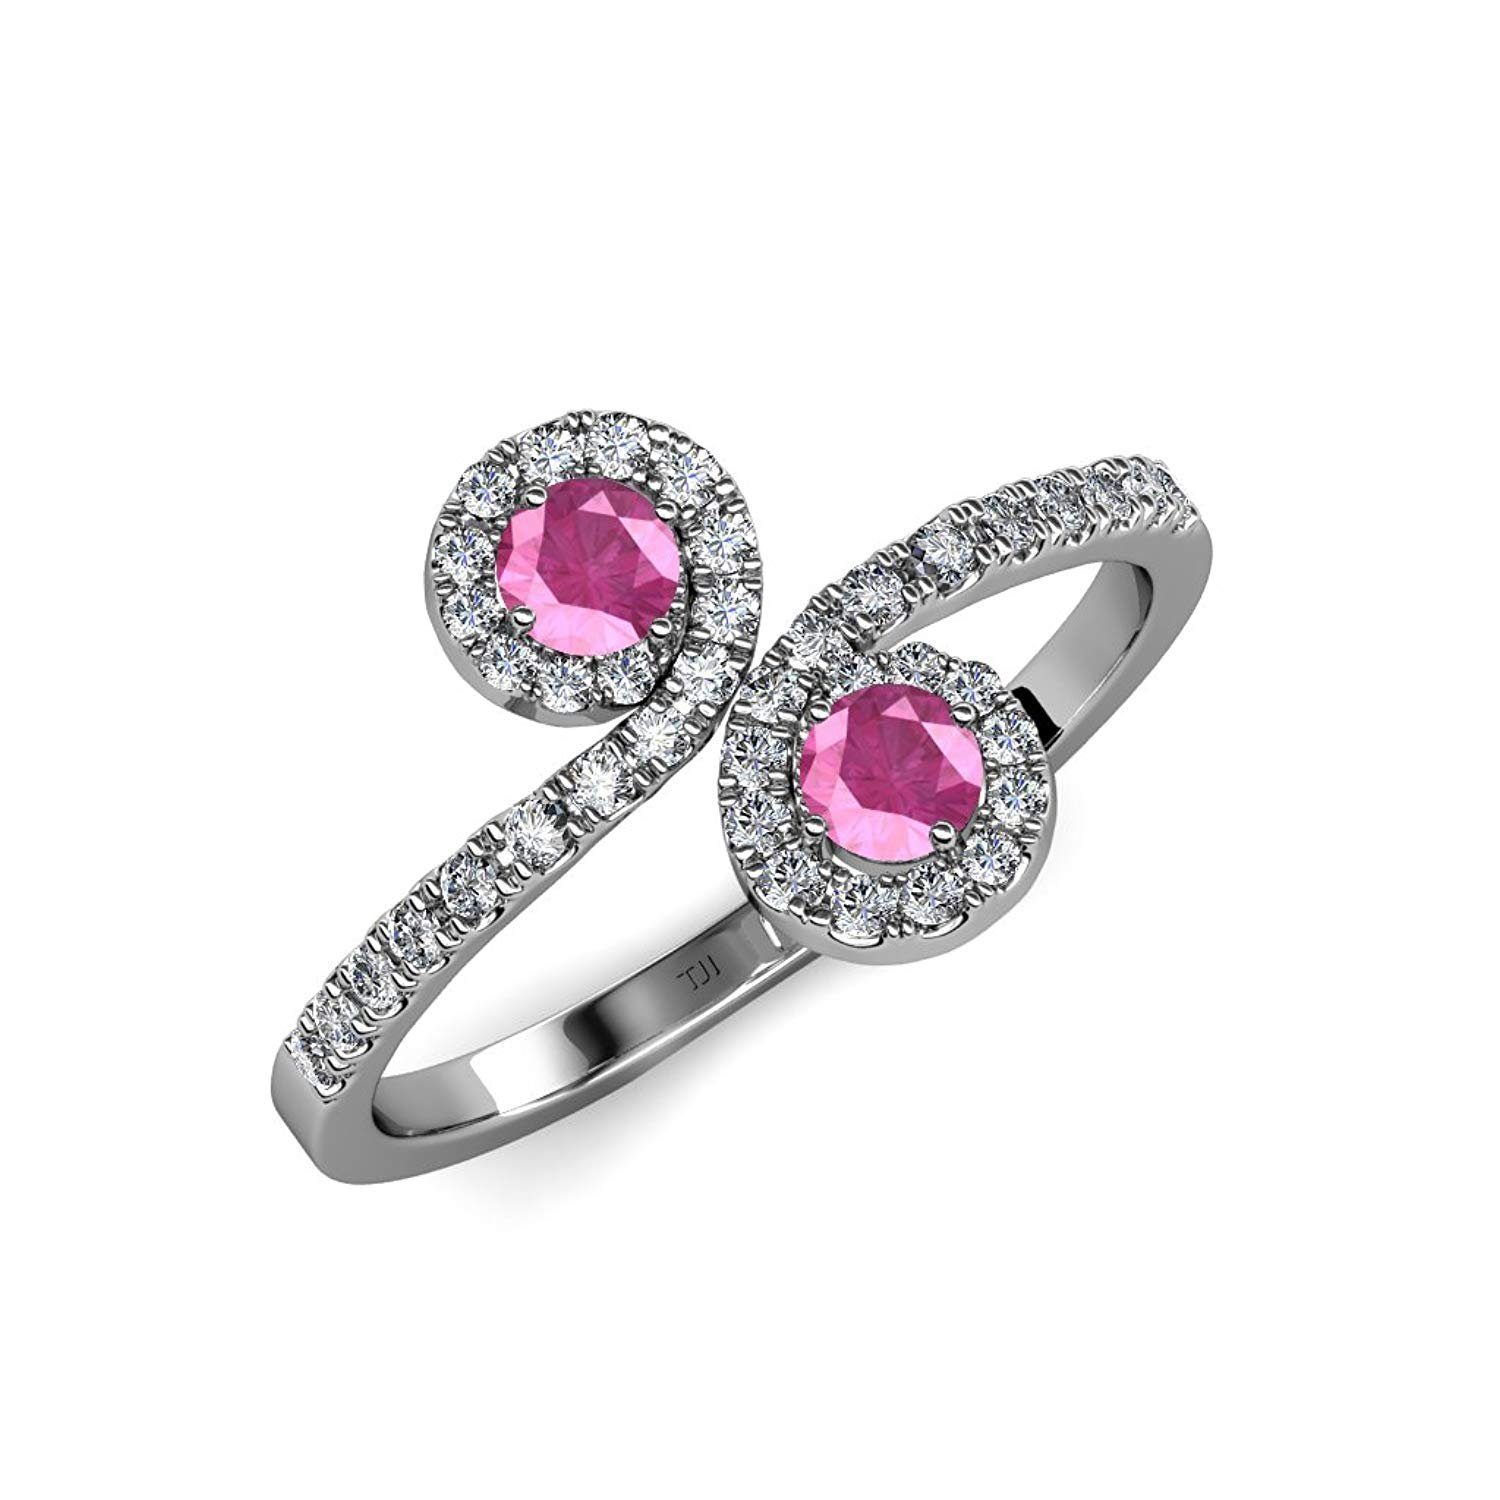 Pink Sapphire 2 Stone with Side Diamonds Bypass Engagement Ring 1.24 ct tw 14K White Gold.size 8.5 by TriJewels